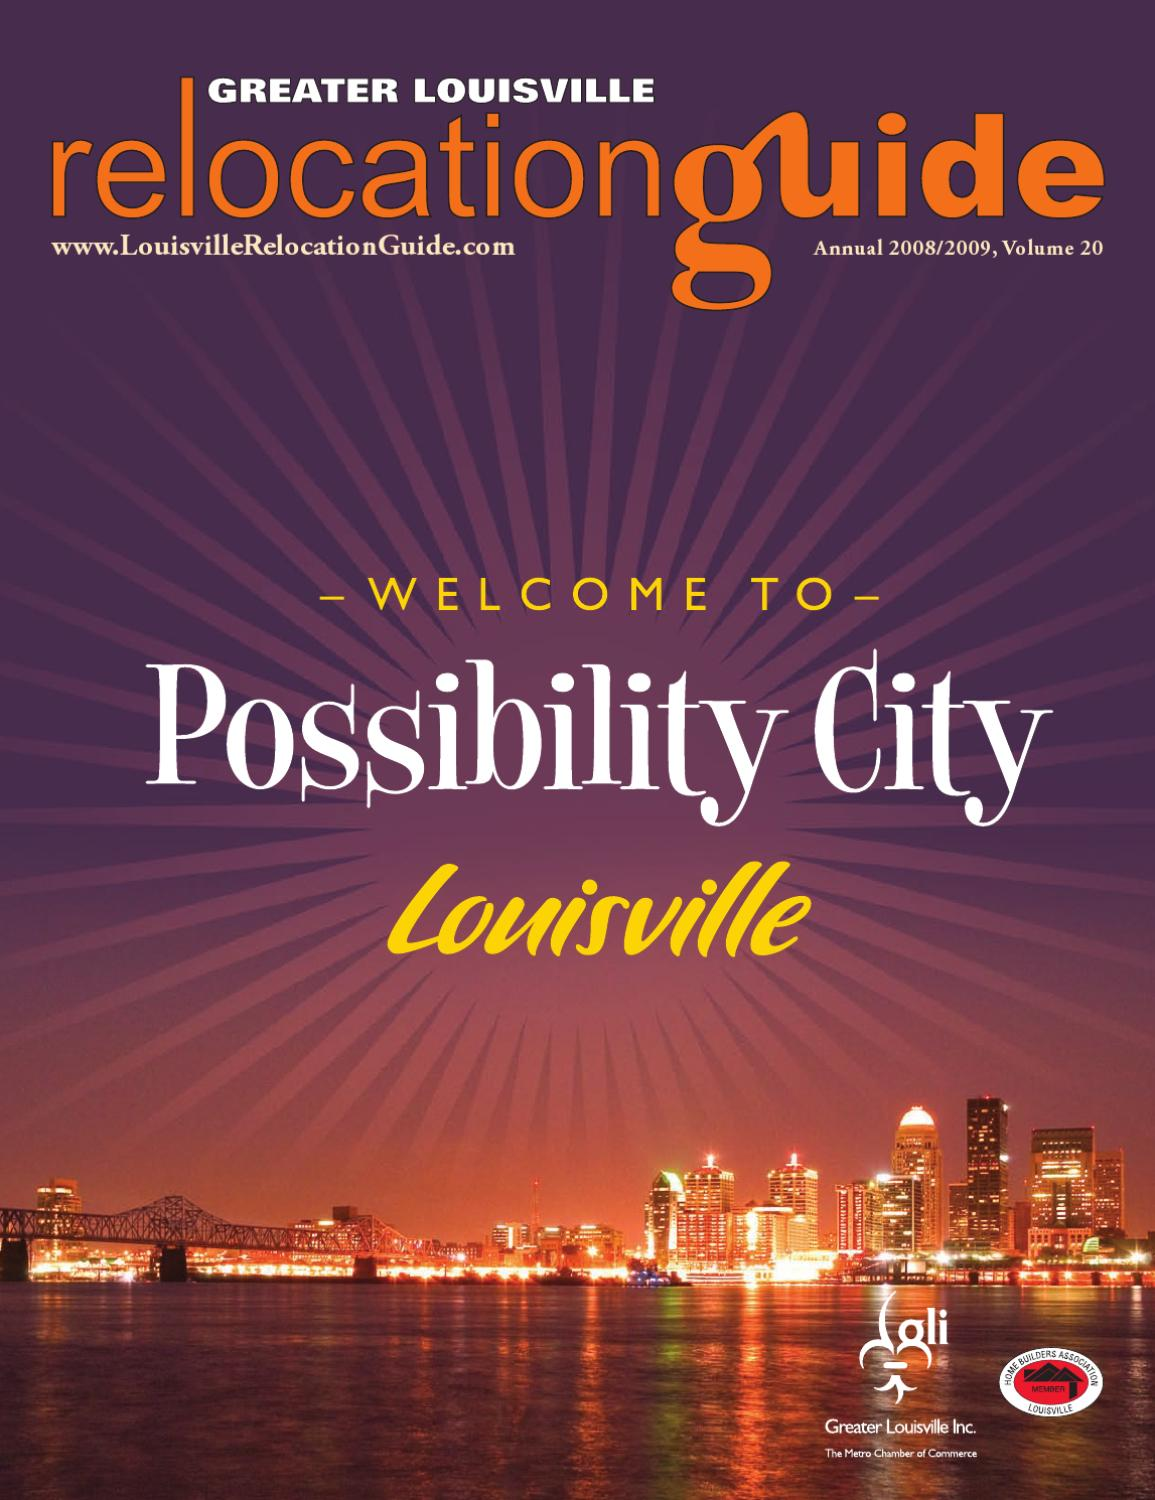 2008/2009 Greater Louisville Relocation Guide by Building